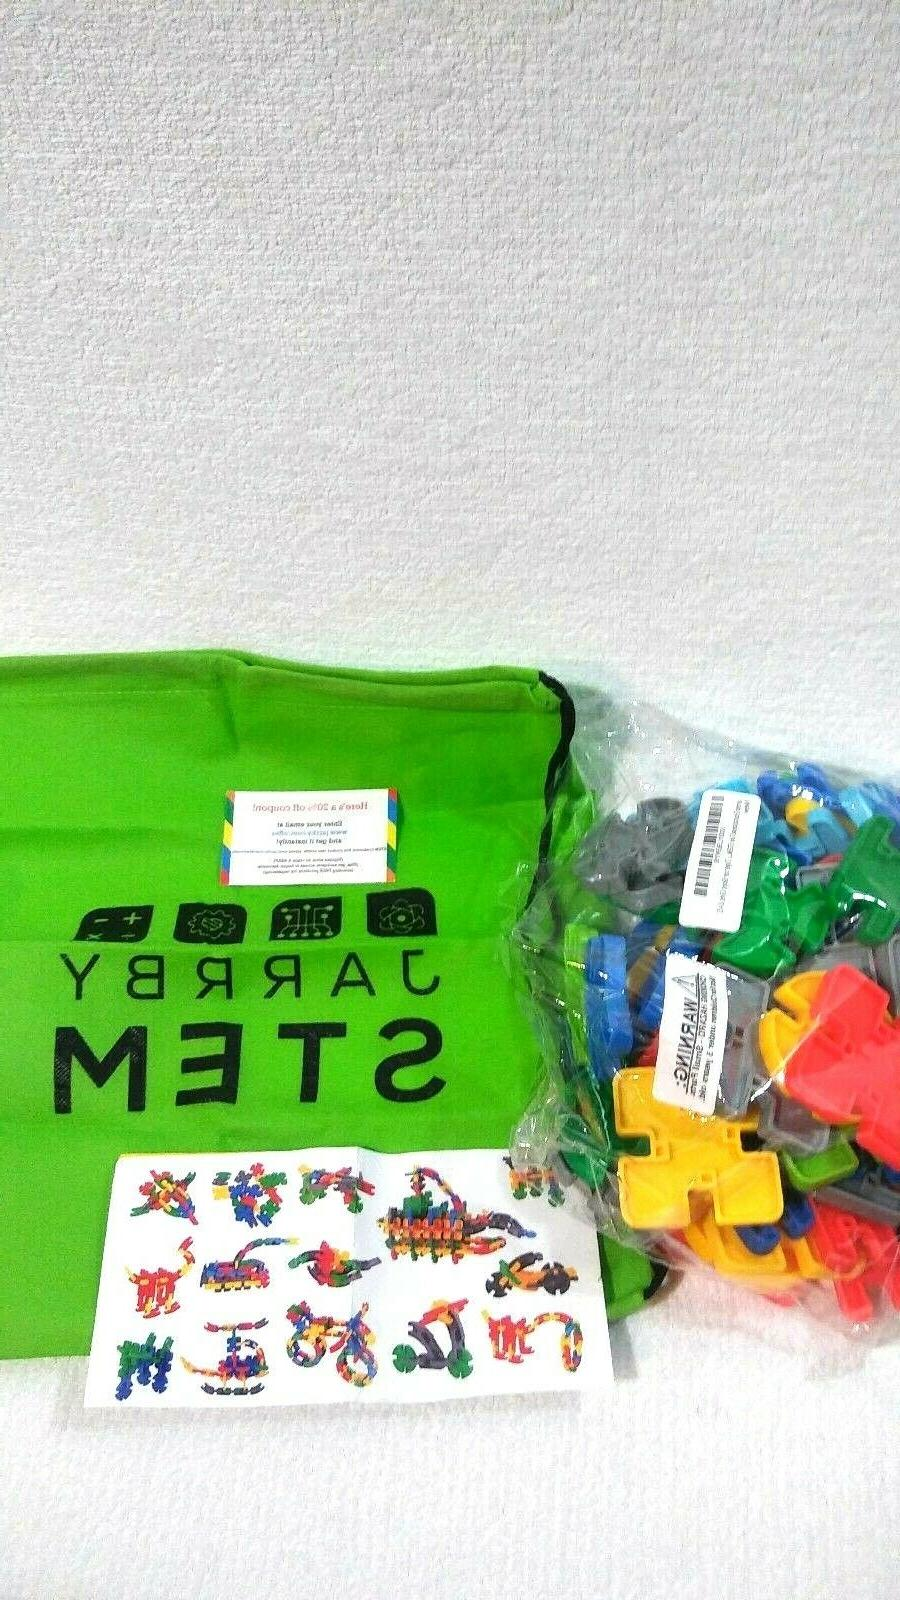 stem learning toys for boys and girls